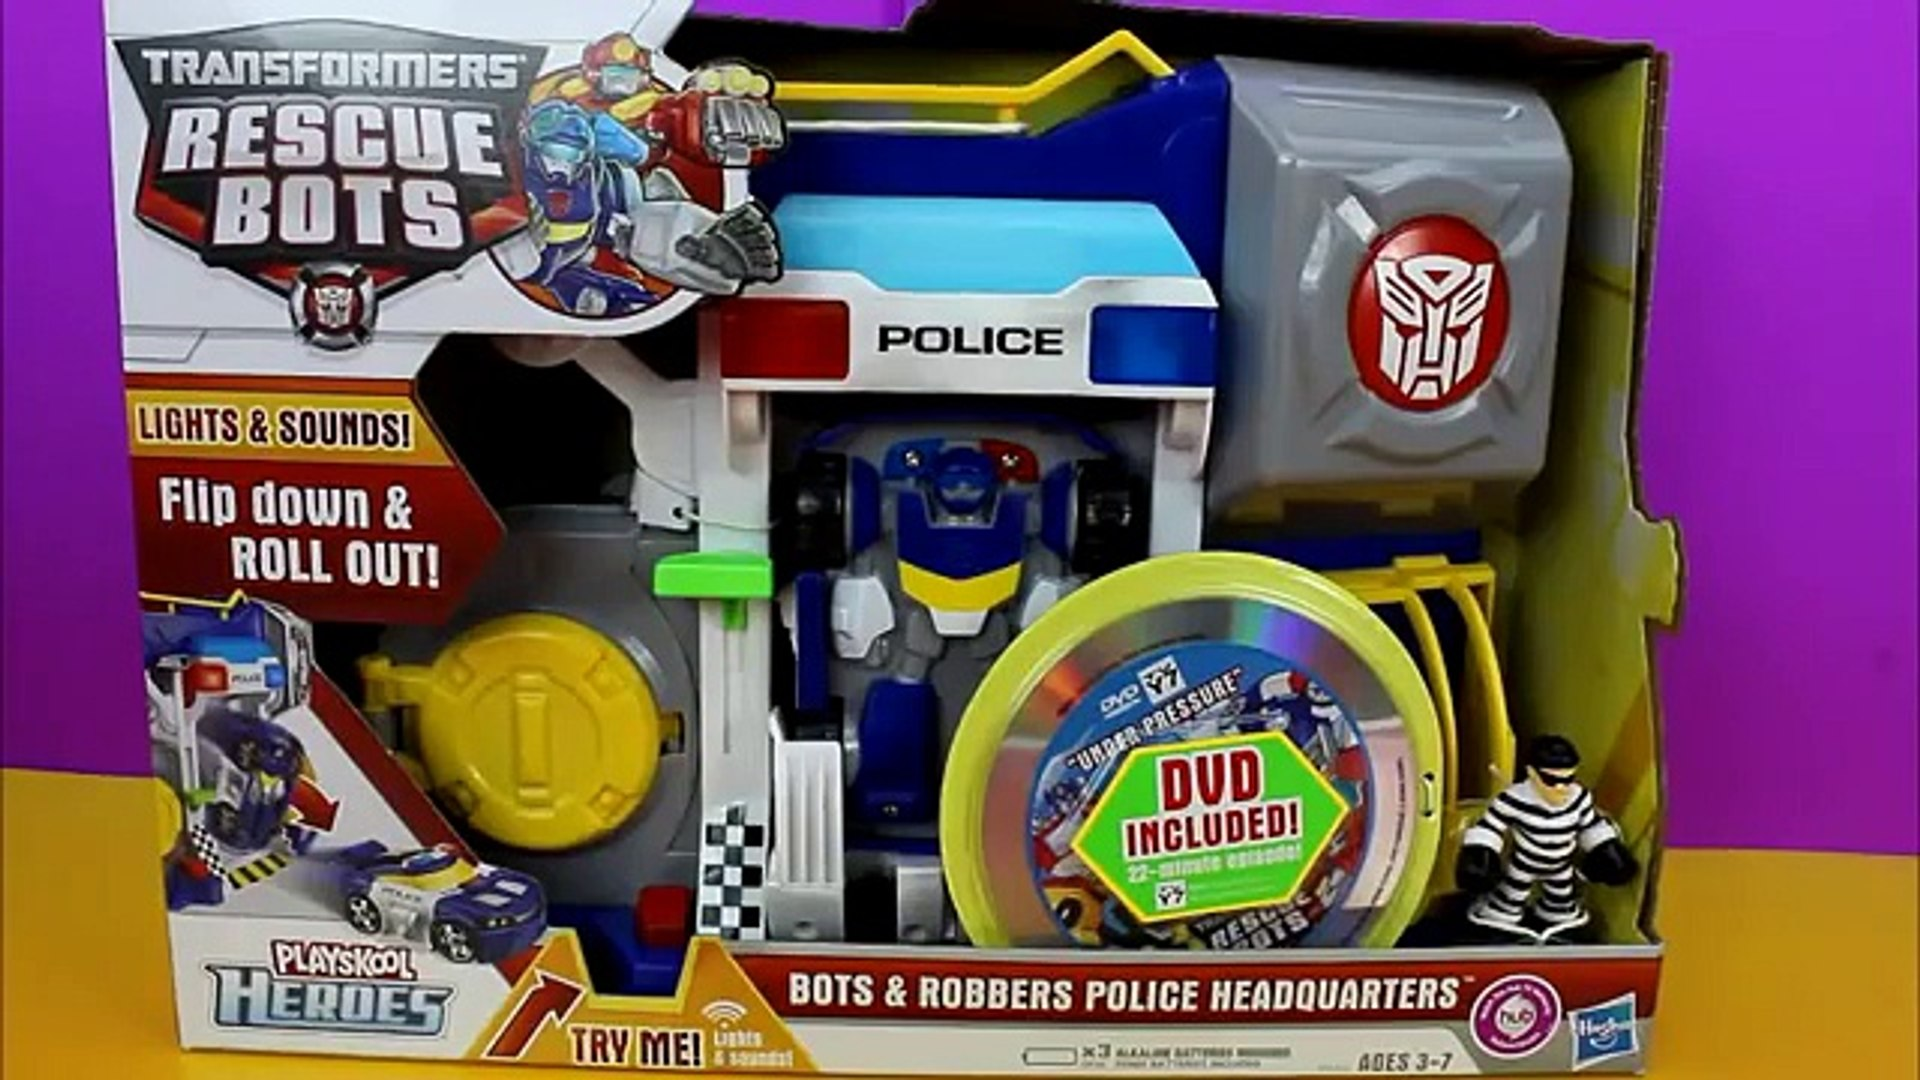 Transformers Rescue Bots Bots & Robbers Police Headquarters Playskool Heroes